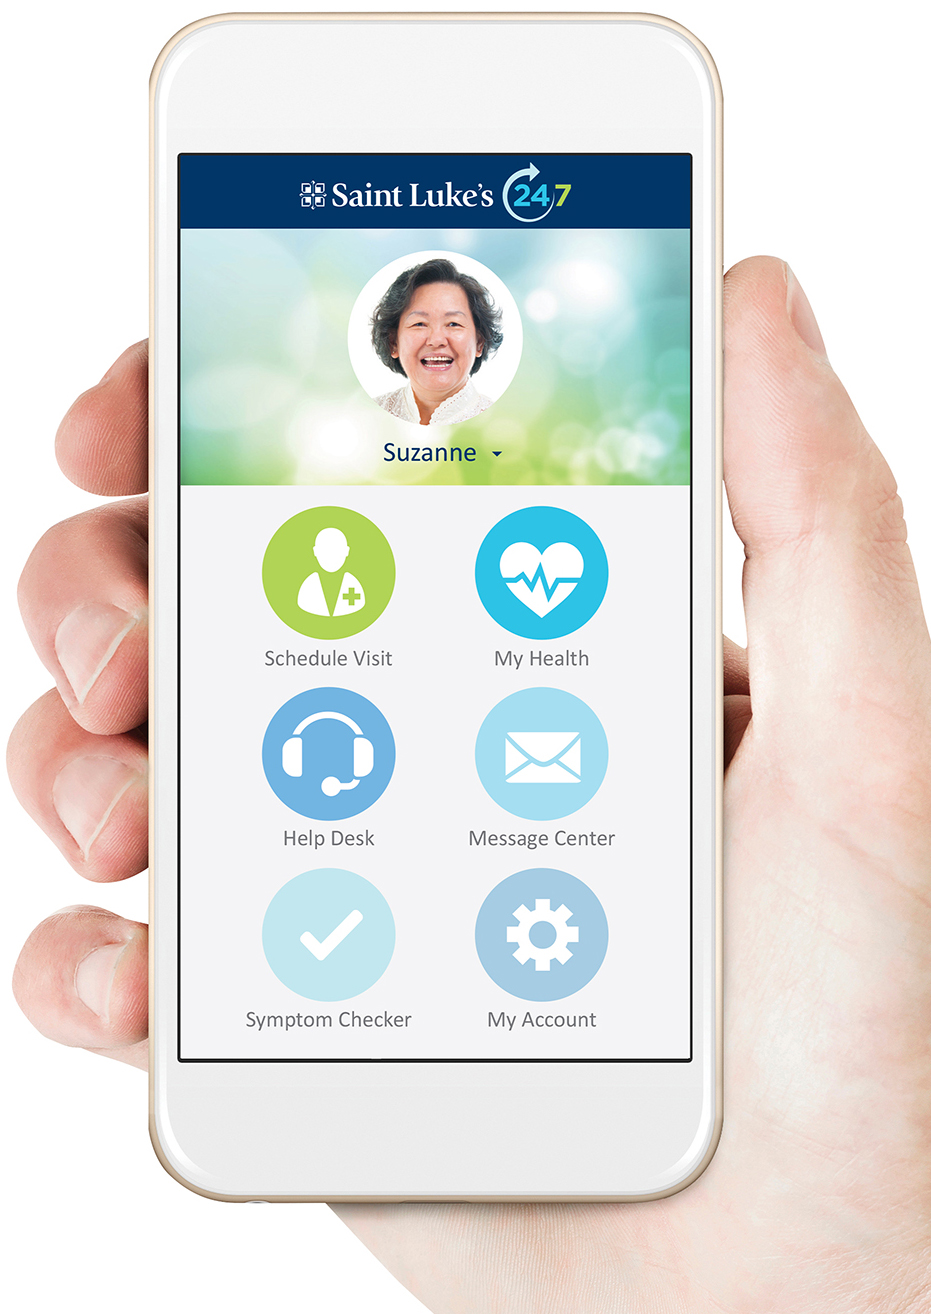 Saint Luke's provides an alternative, affordable option for receiving health care through its mobile app or online service, Saint Luke's 24/7.